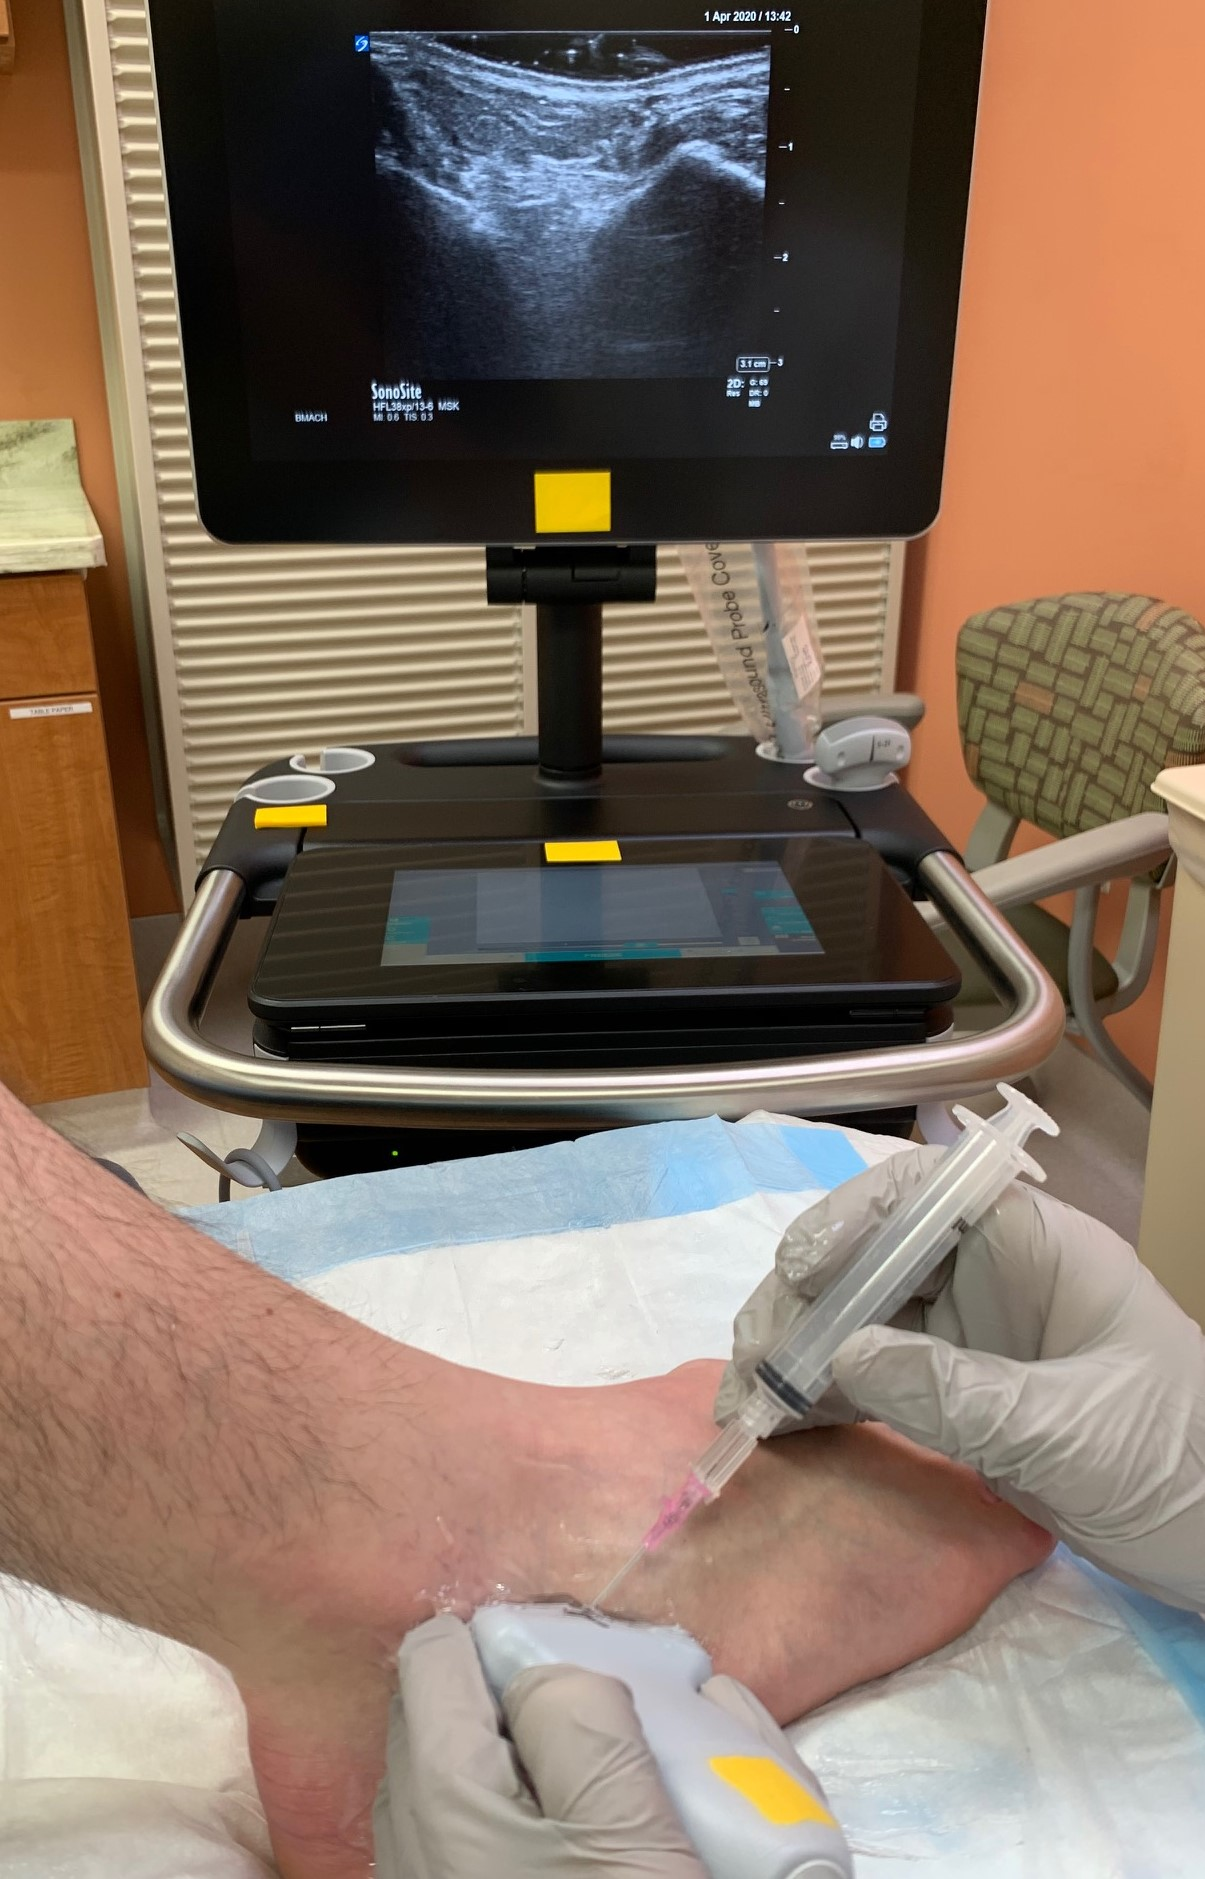 Demonstration of positioning and location for access to subtalar ankle joint with ultrasound guidance.  Ultrasound monitor demonstrates desired landmarks of Talus (left) and Calcaneus (right).